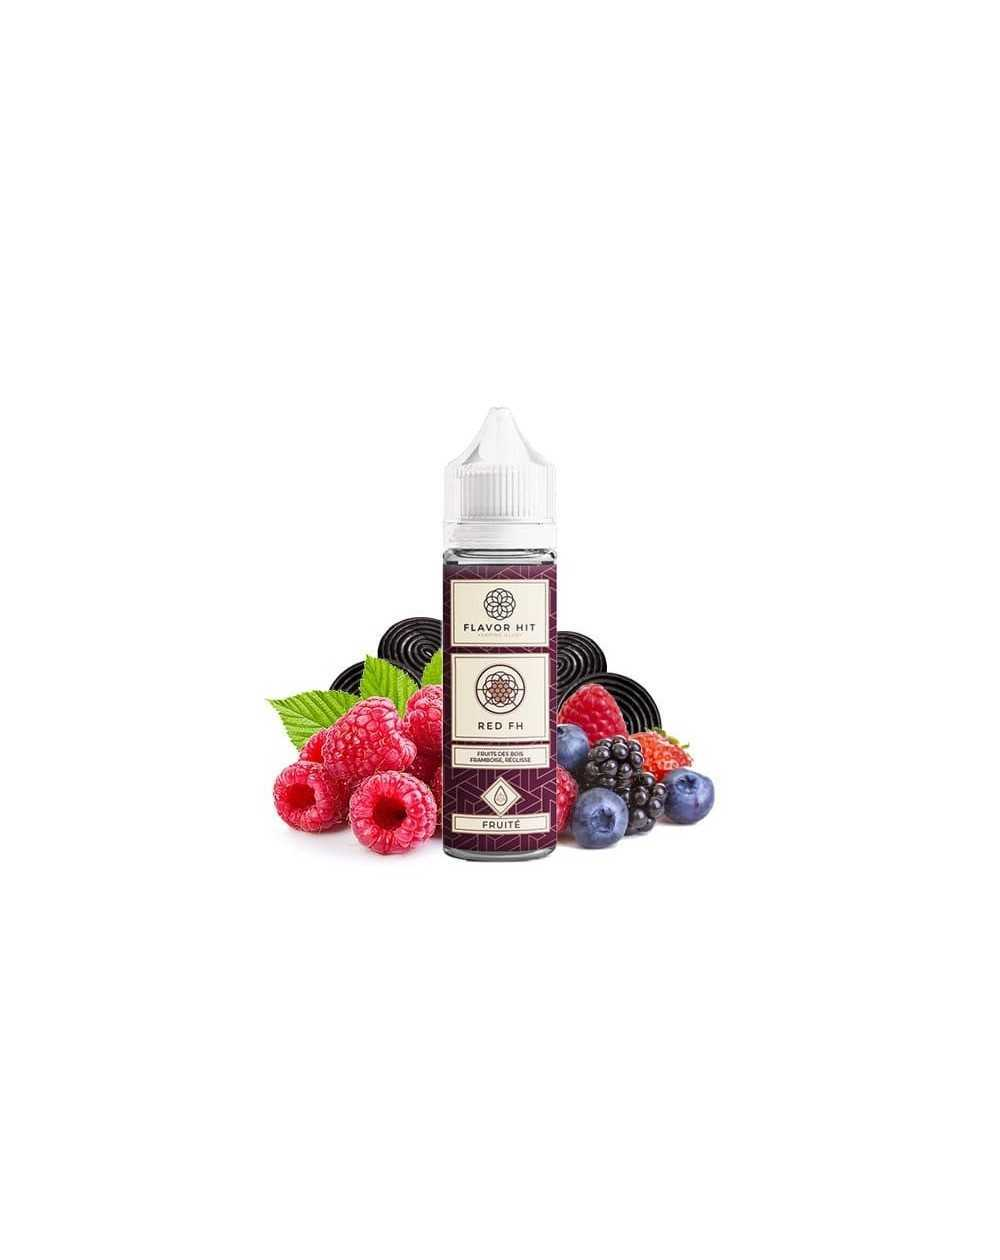 Eliquid Red Fh 50ml - Flavor Hit-1